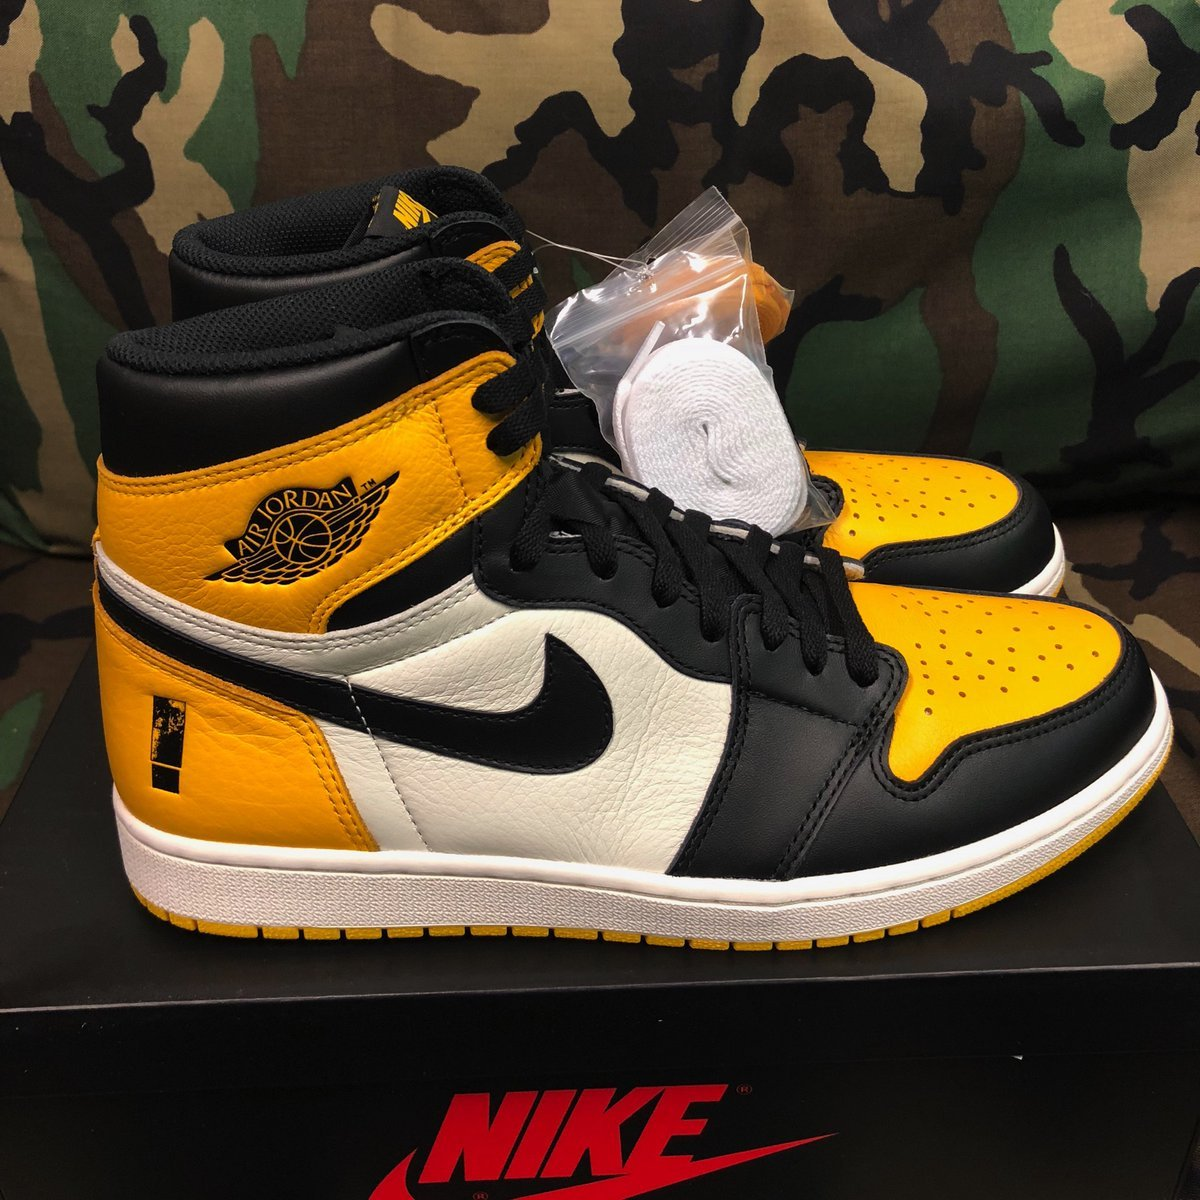 Shinedown Air Jordan 1 Attention Attention